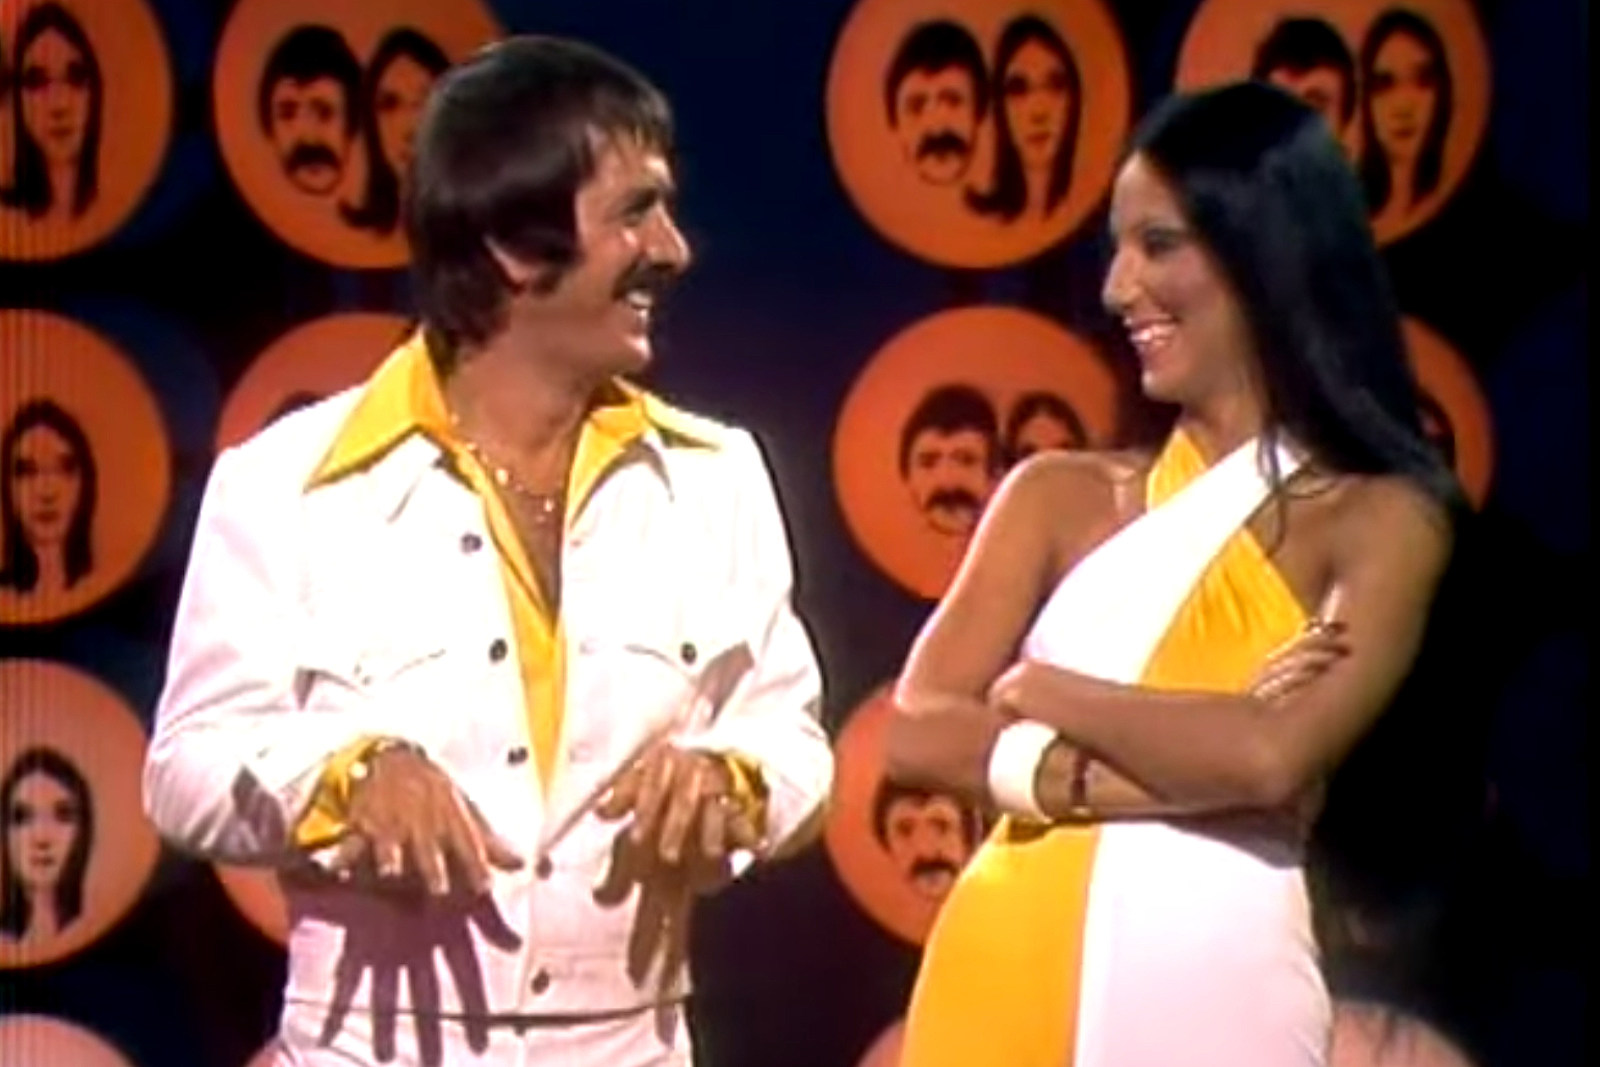 50 Years Ago: Sonny and Cher Take Their Shtick to Television